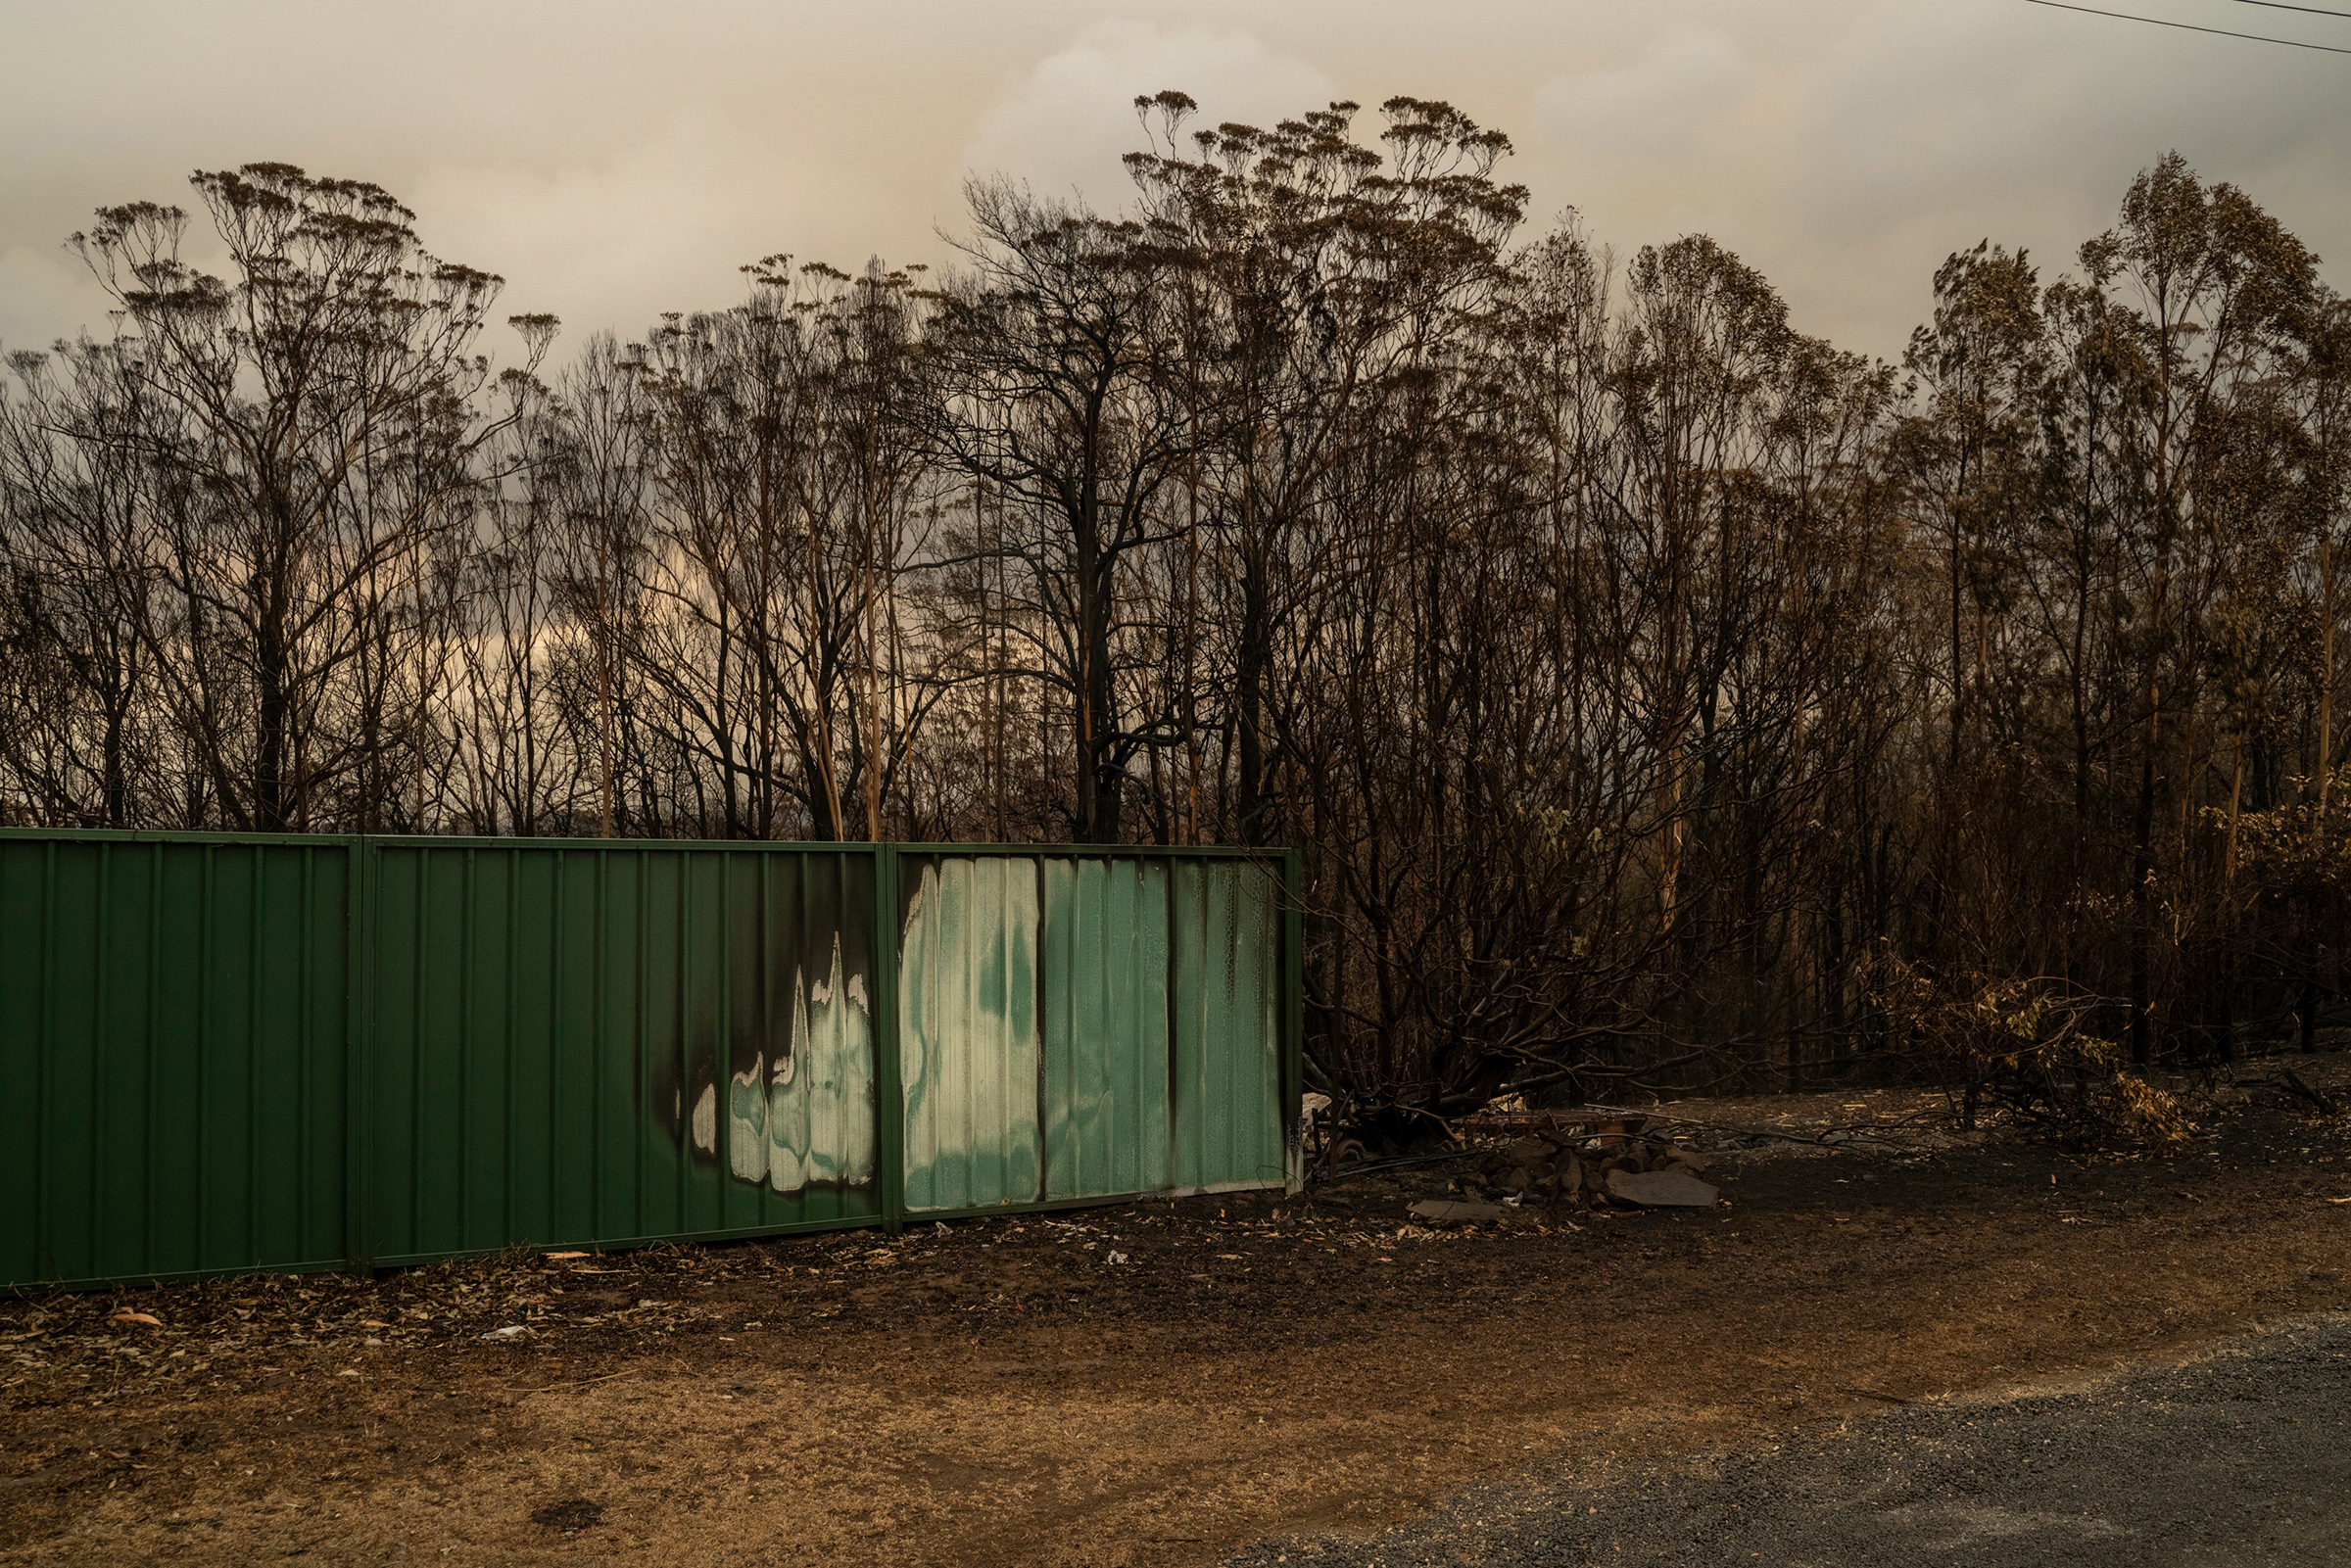 A burned fence in Lake Conjola on Jan. 5. The community was devastated by flames in late December.